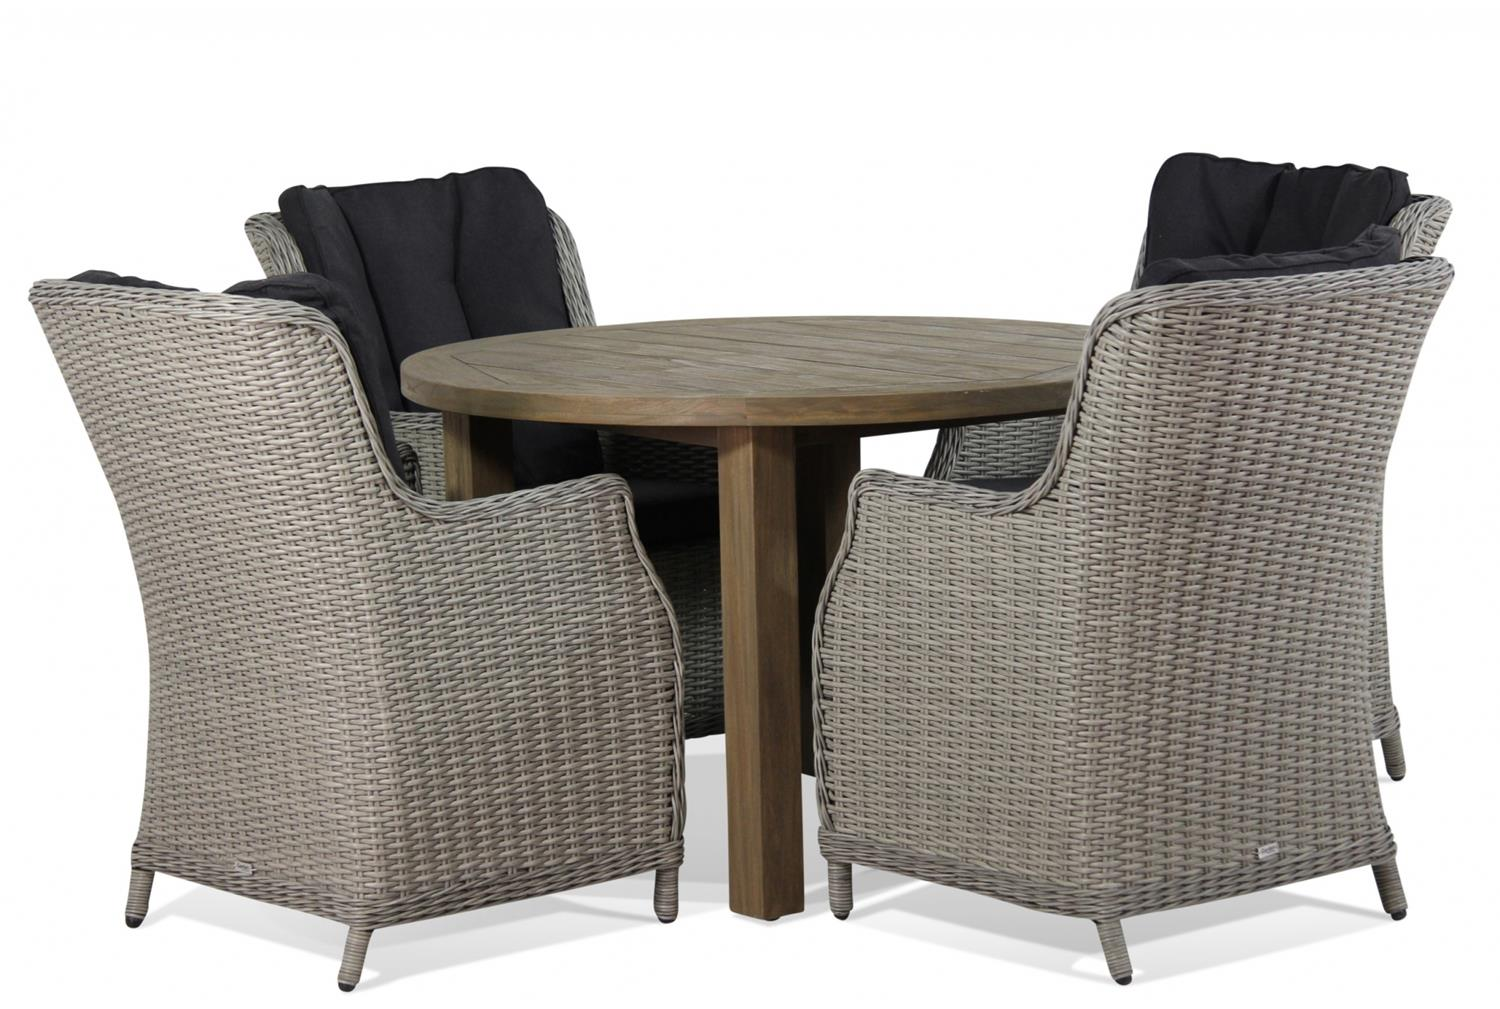 Wicker Garden Collections Buckingham/Oxford 120 cm dining tuinset 5-delig